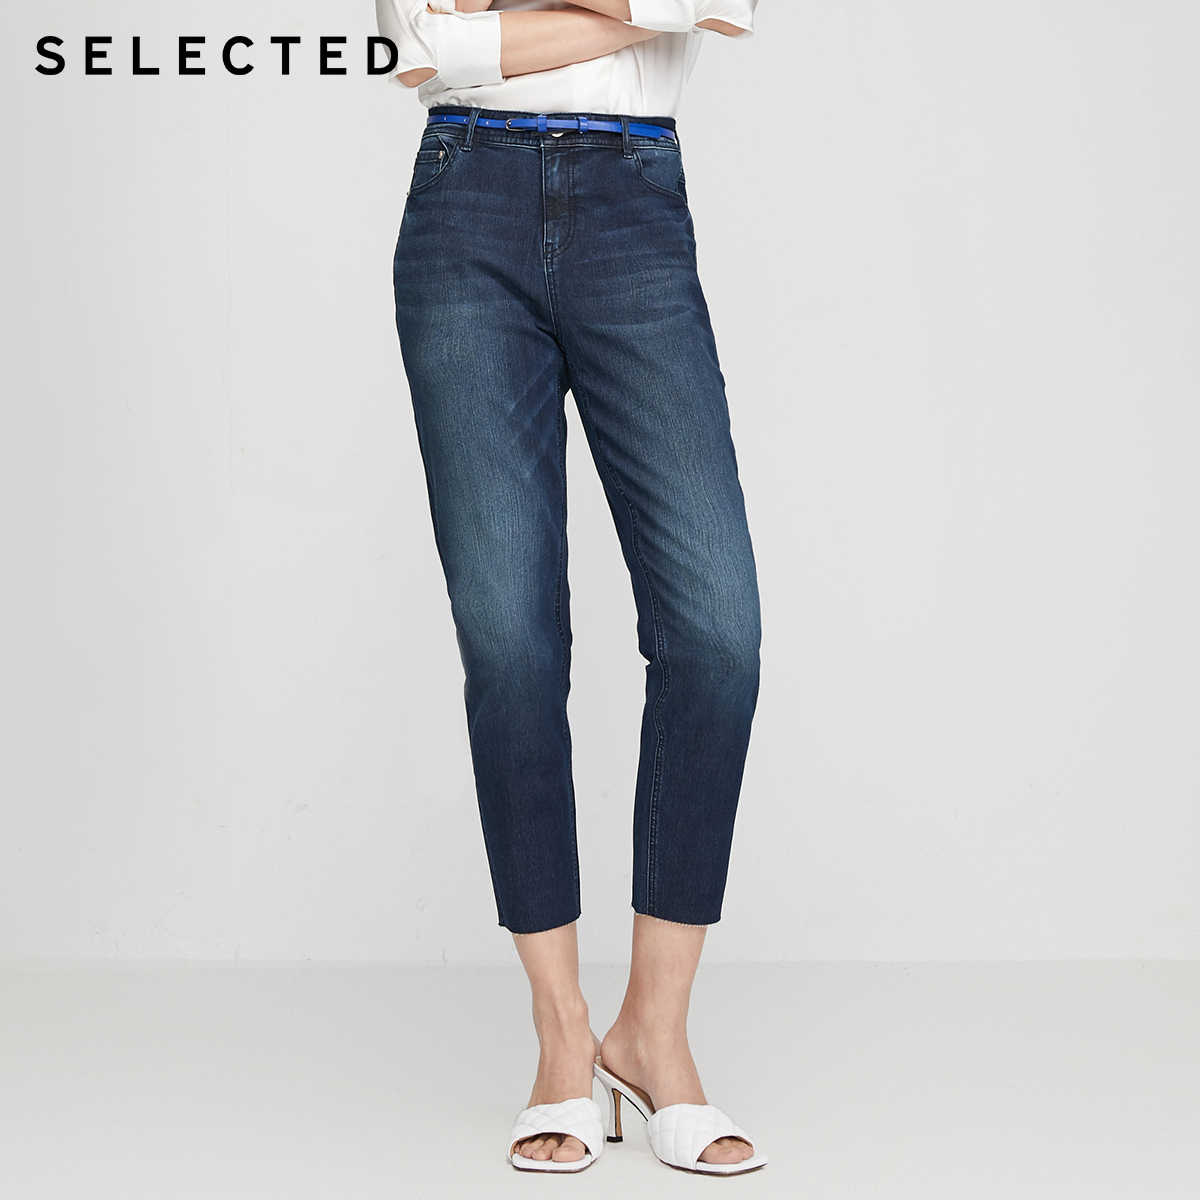 SELECTED Women's Cotton 데님 바지 Mid-rise Tapered Crop Jeans R | 420232523